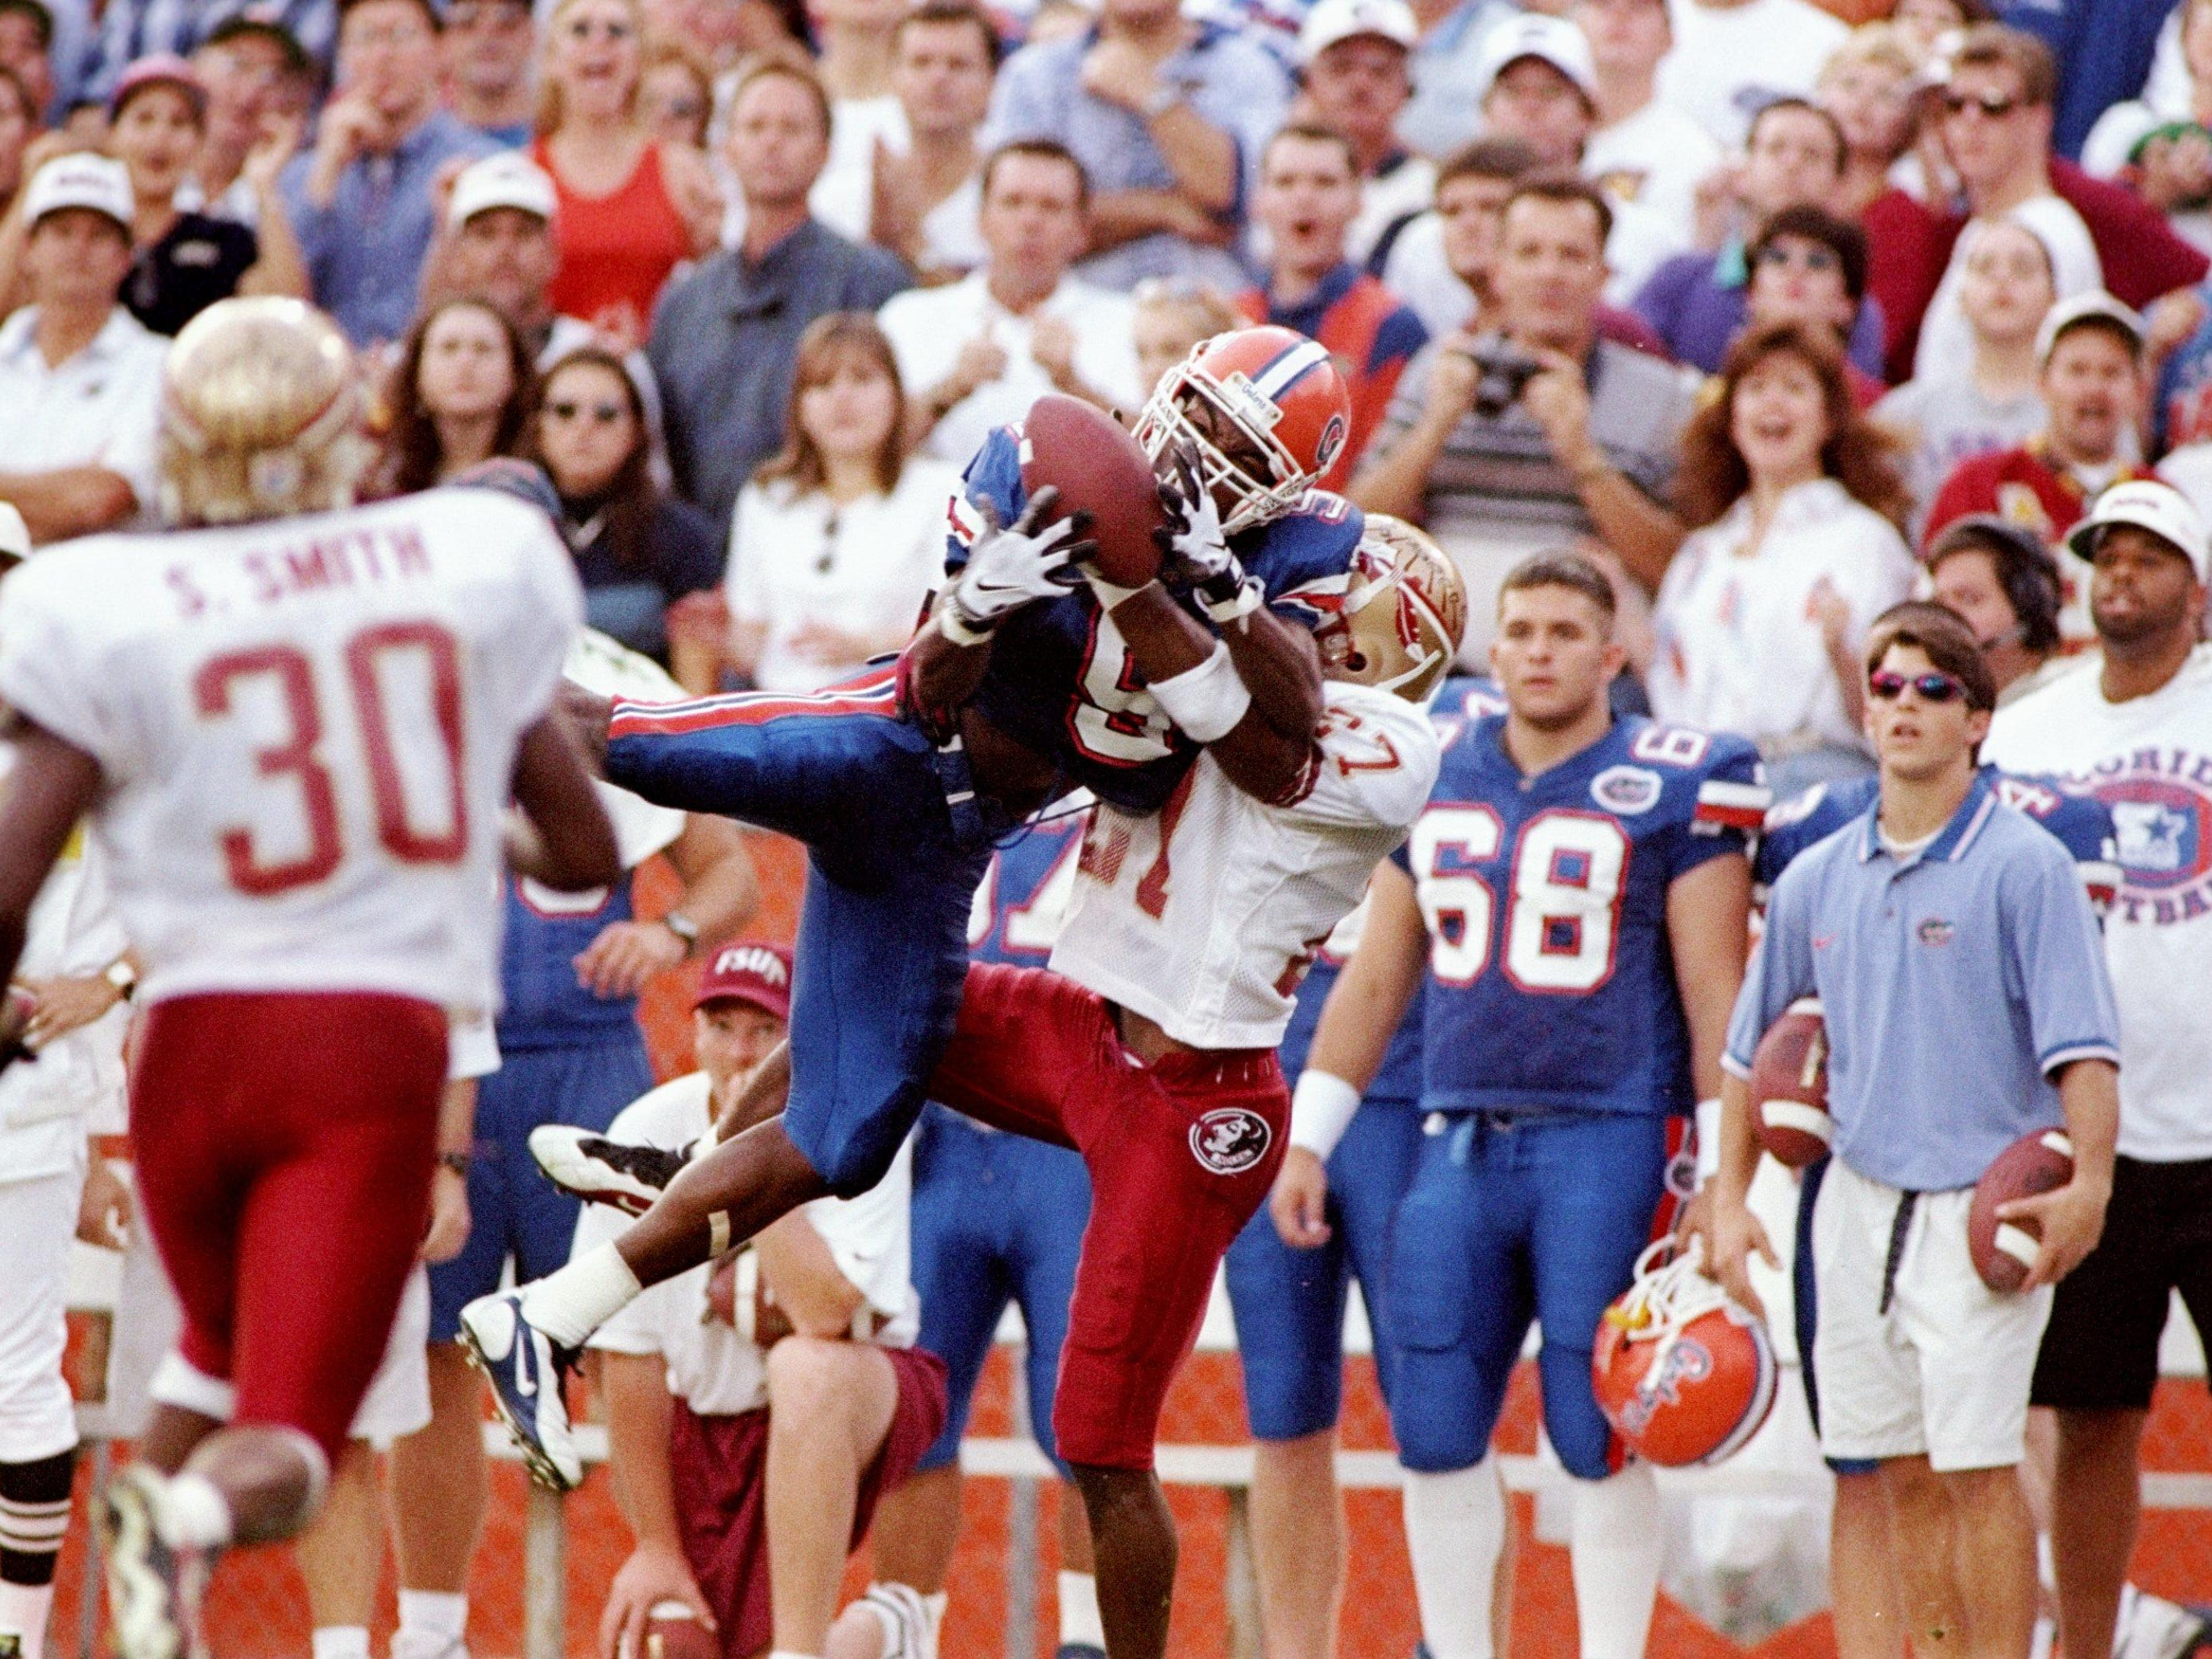 Florida wide receiver Jacquez Green makes a big catch against Florida State cornerback Tay Cody during a game in Gainesville in 1997. The Gators won the game 32-29.